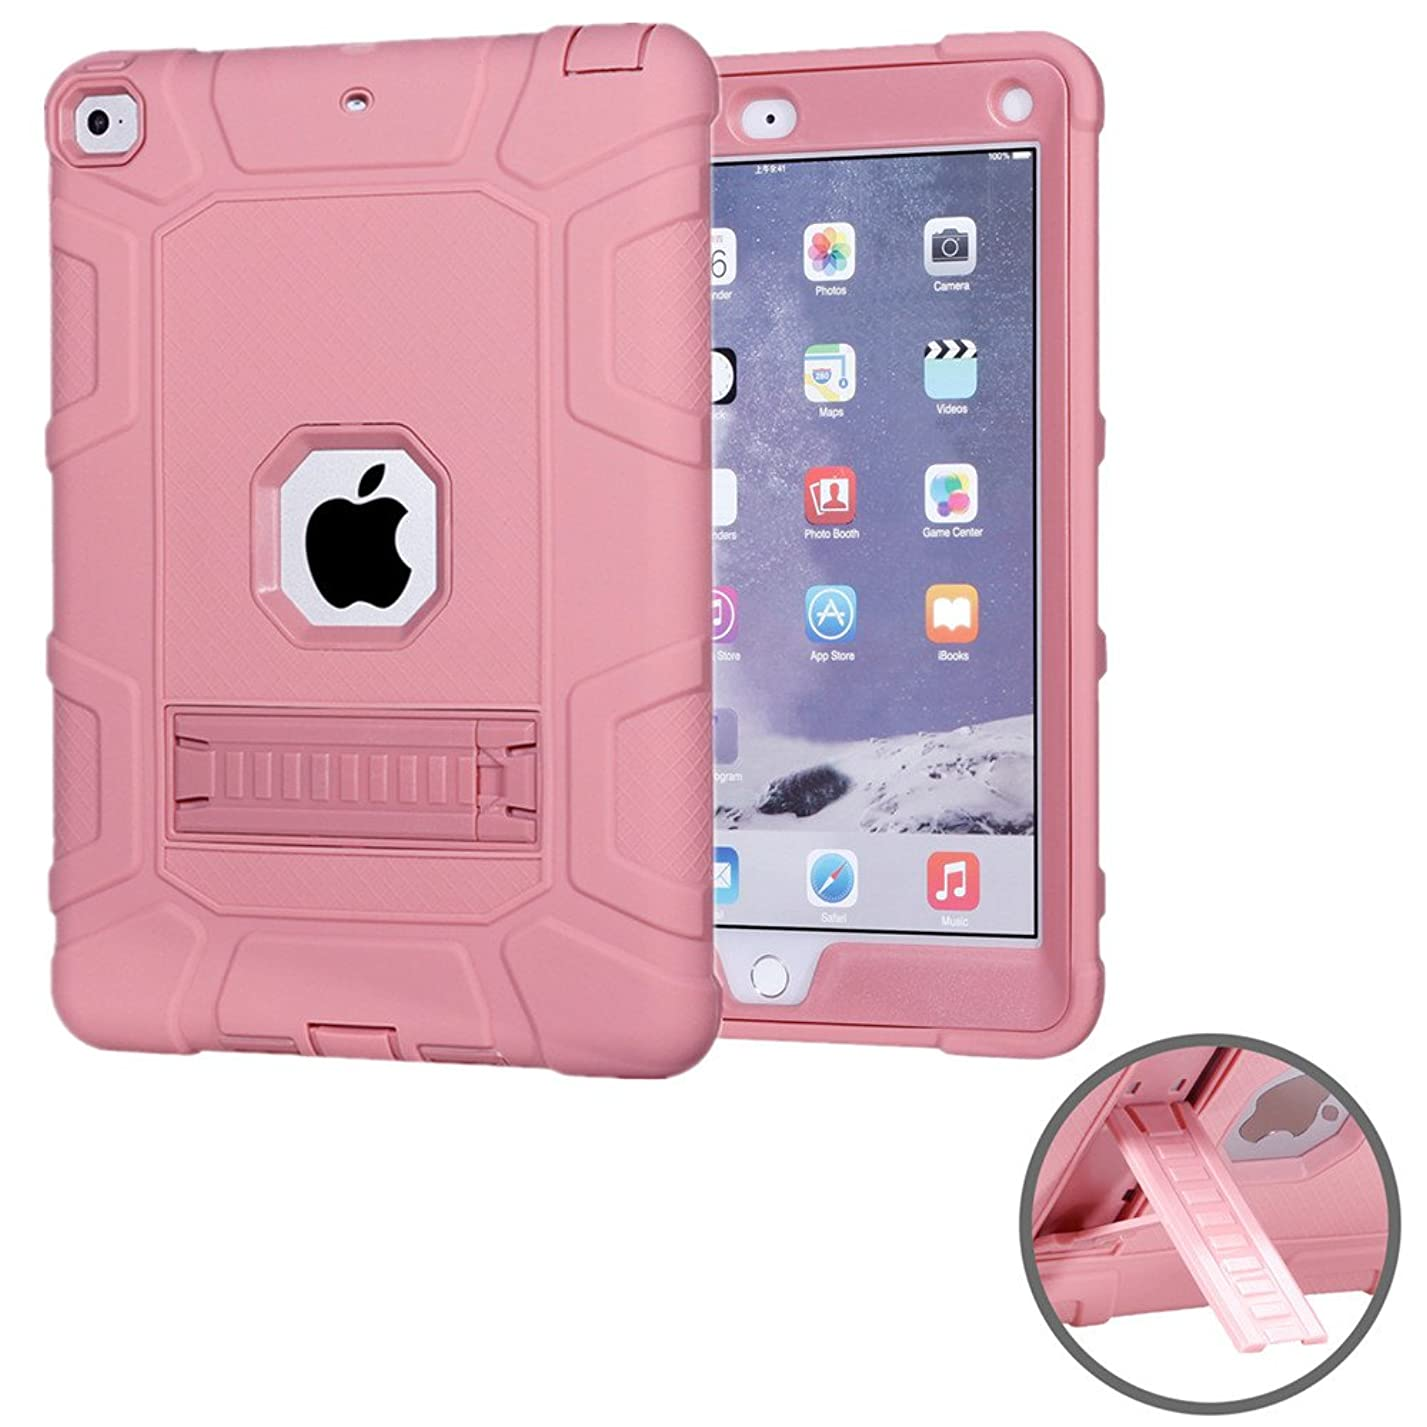 New iPad 9.7 2018/2017 Case - KAMII [Heavy Duty] Triple-layer Protection Shockproof Hard PC Soft Silicone Hybrid Impact Defender Case Cover with Kickstand for Apple New iPad 9.7 Inch (Rose Gold) nt60506047